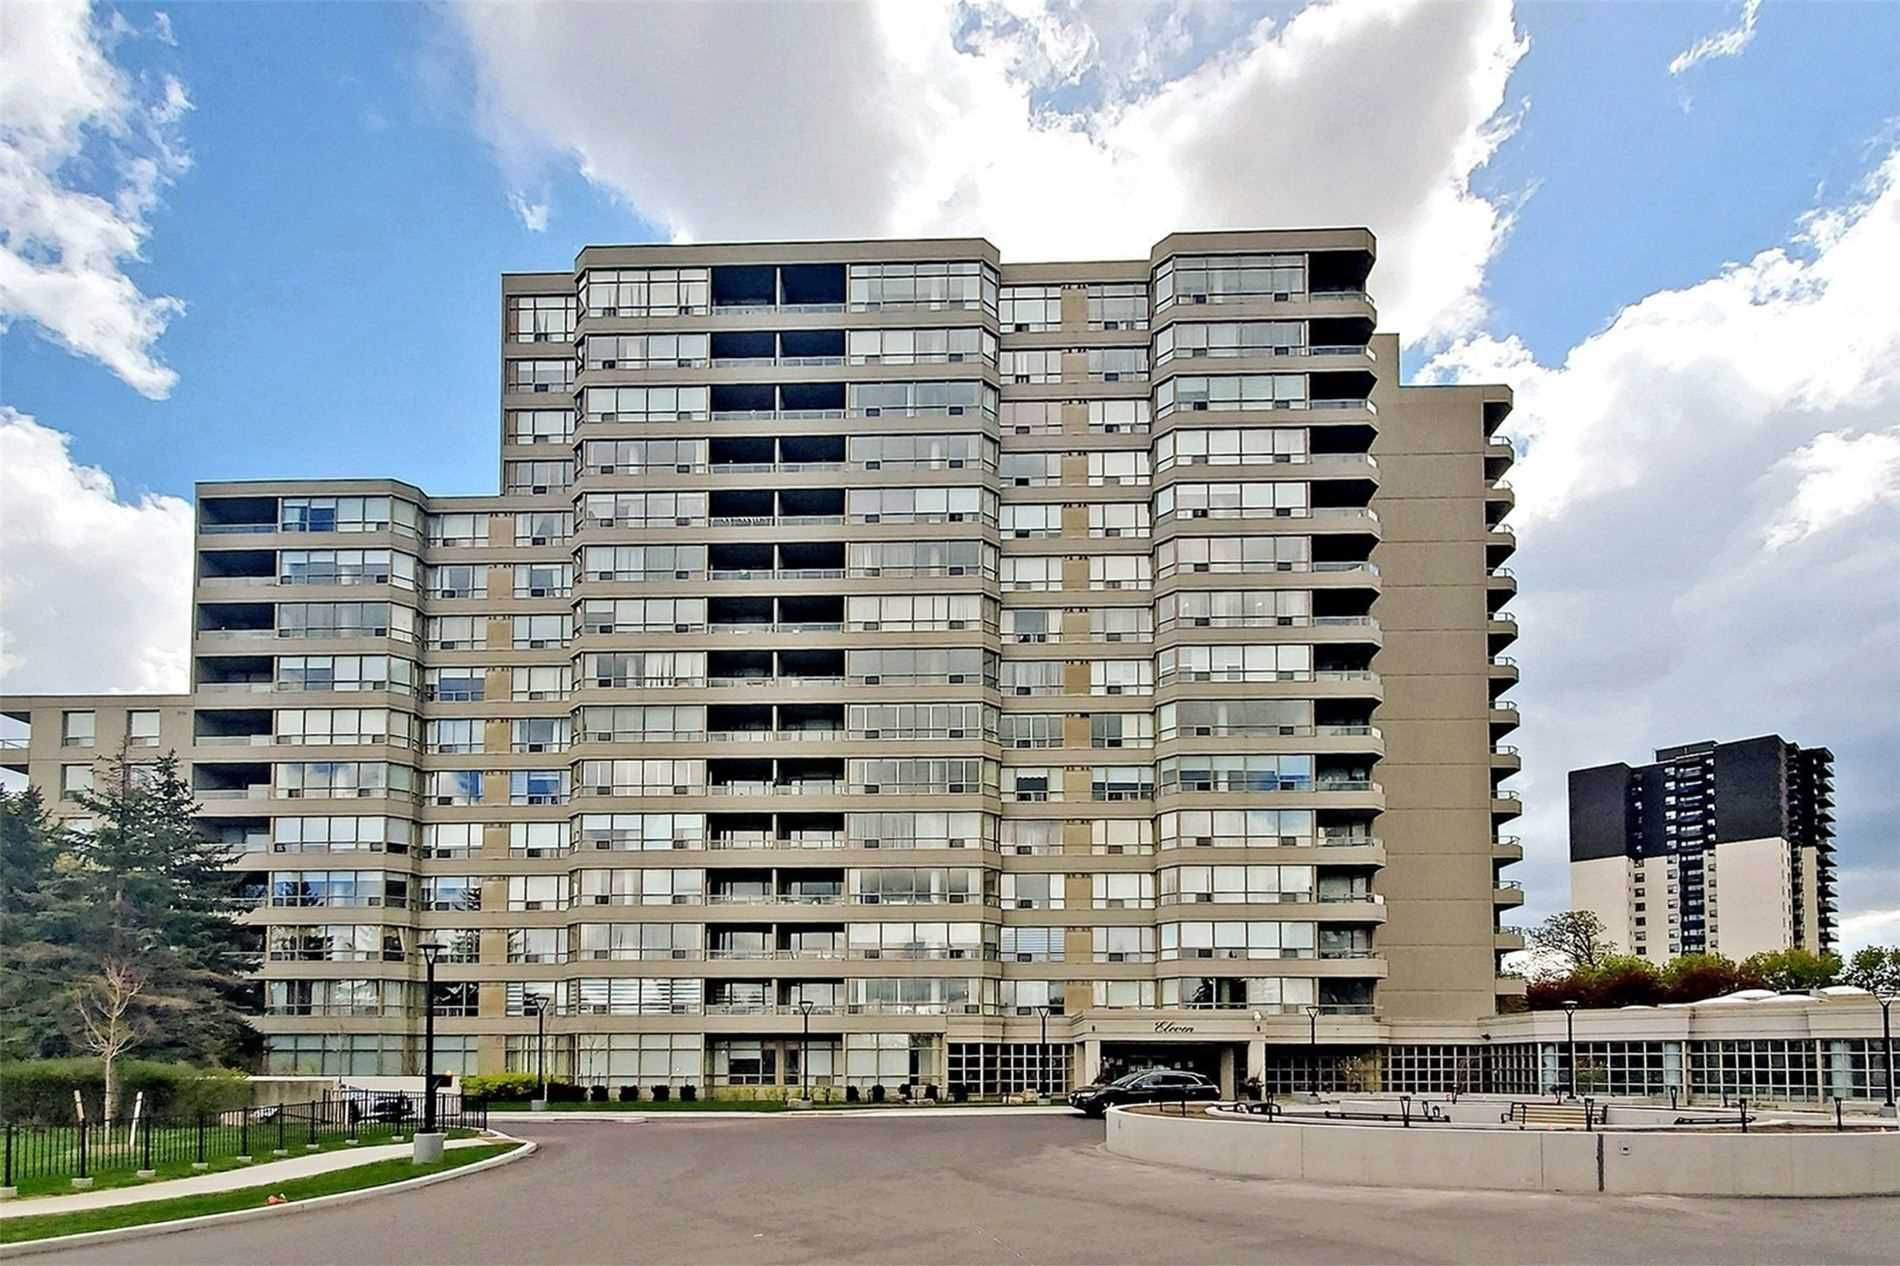 11 Townsgate Dr, unit 707 for sale in Toronto - image #1